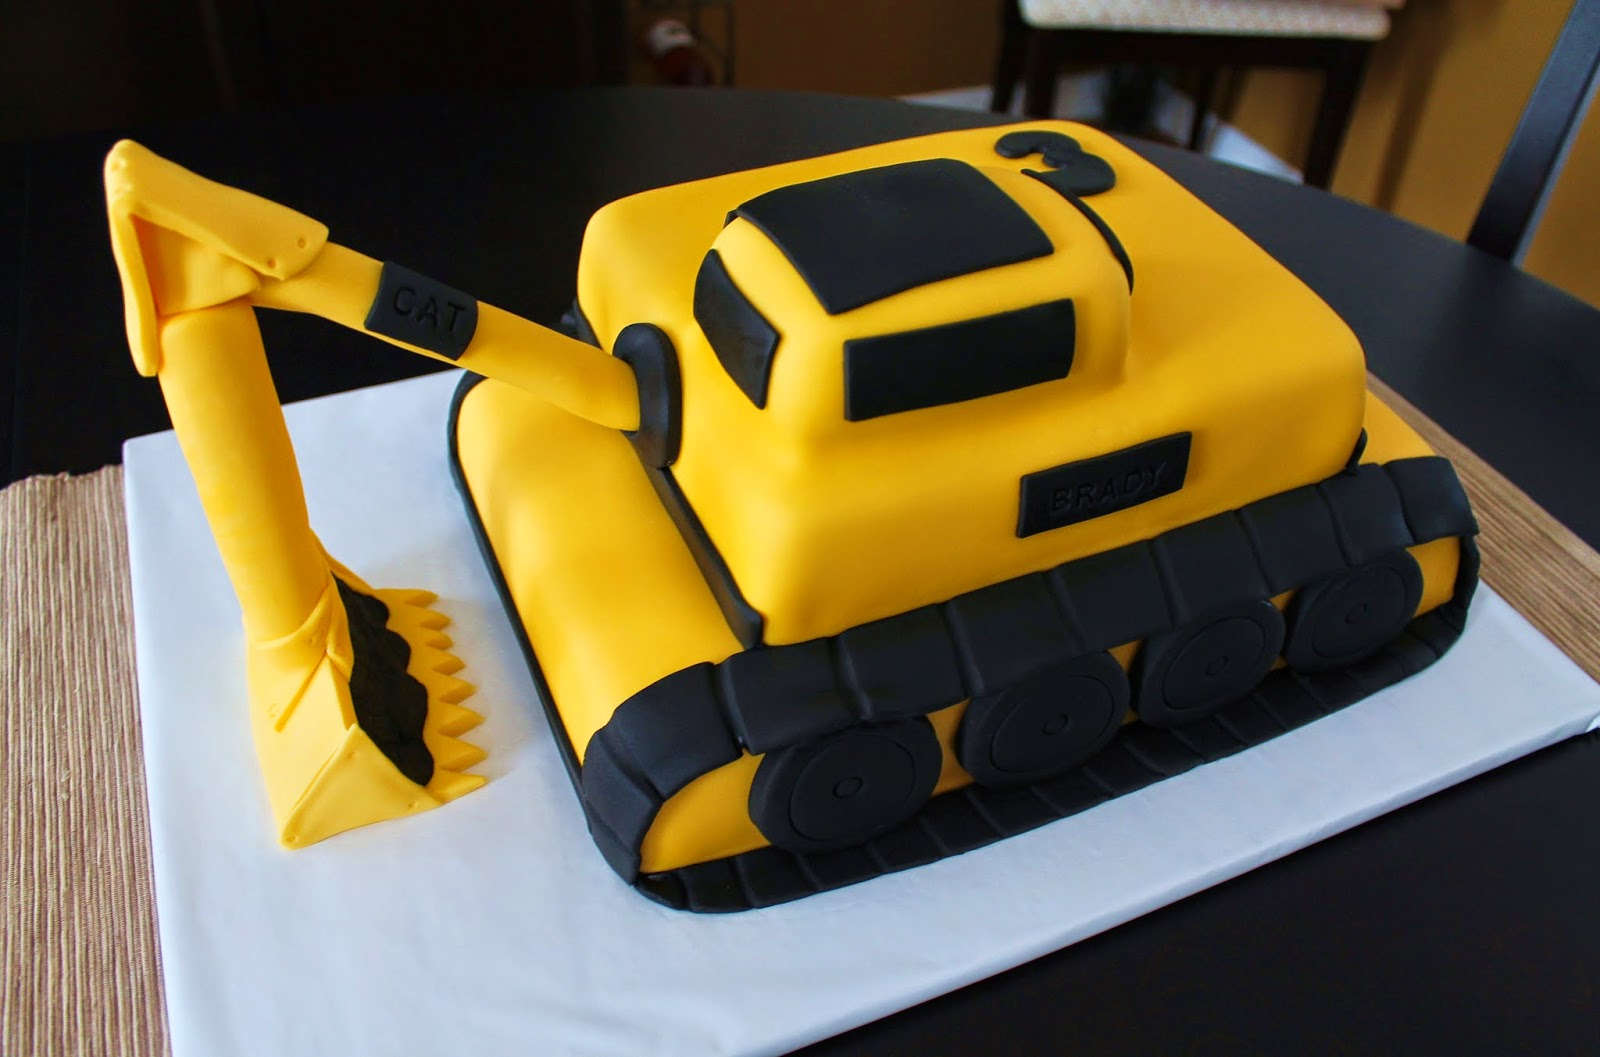 Creative Cakes By Lynn Excavator Cake Amp Construction Cupcakes